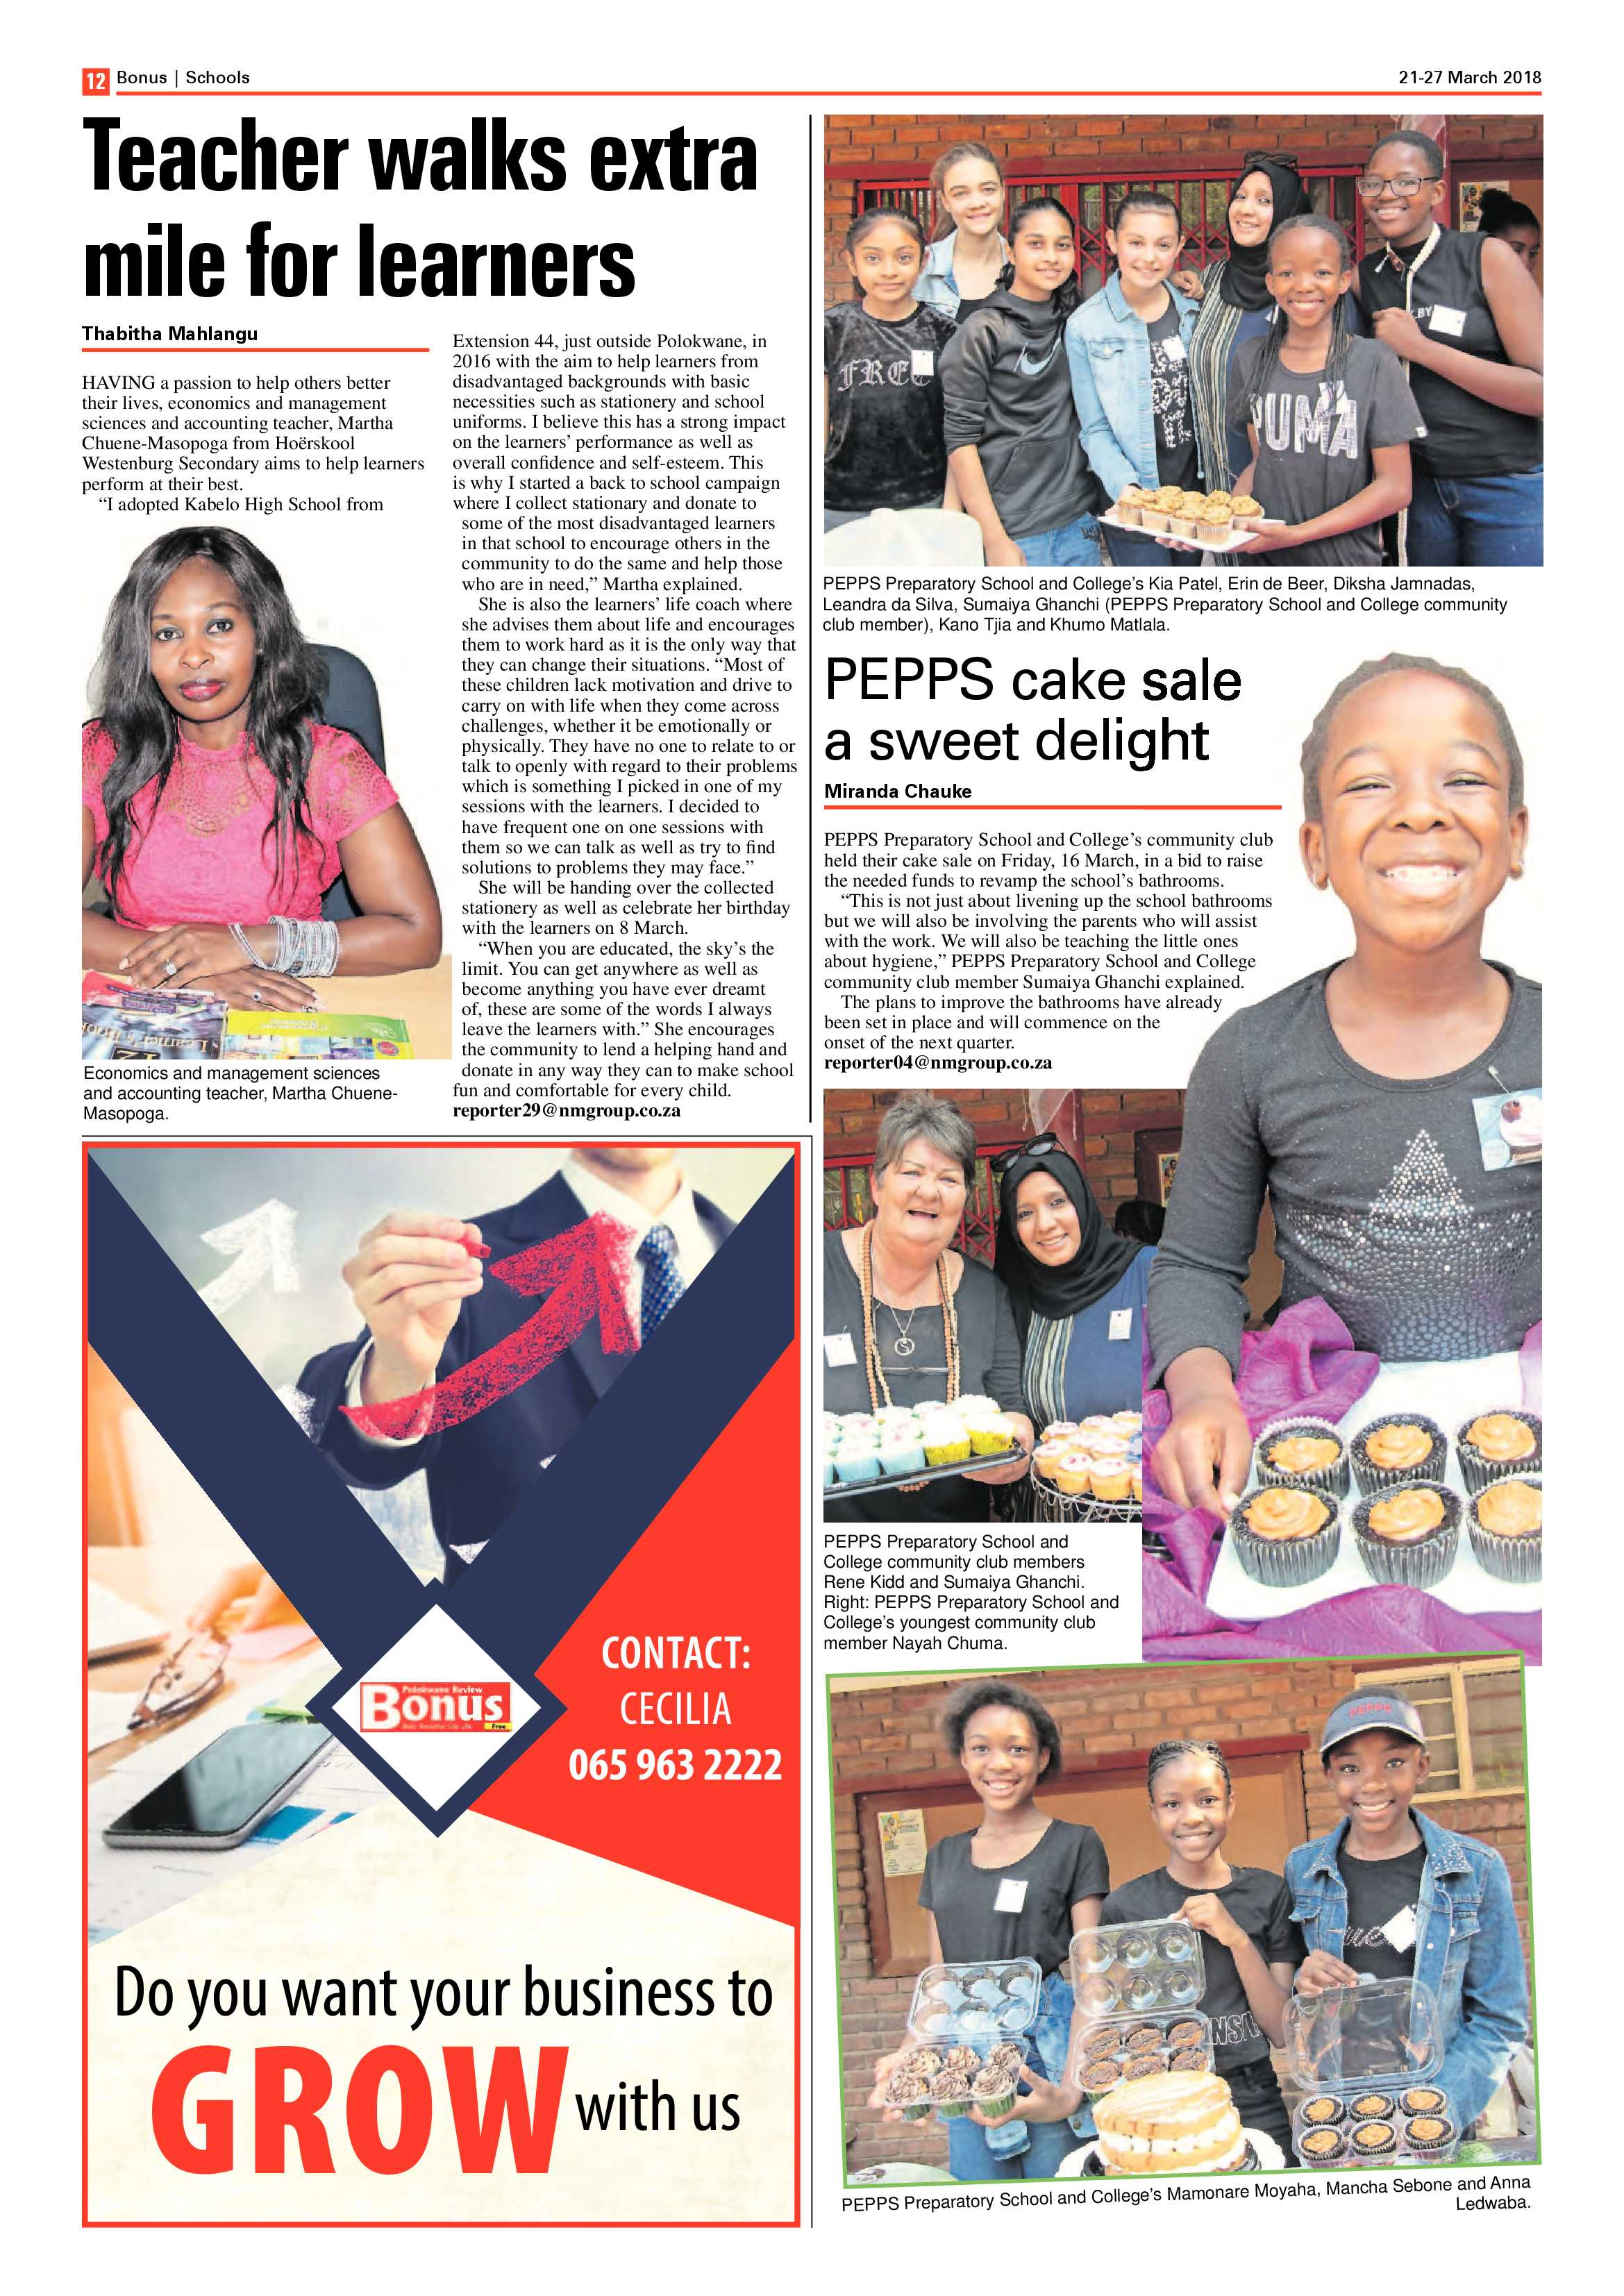 review-bonus-21-march-2018-epapers-page-12